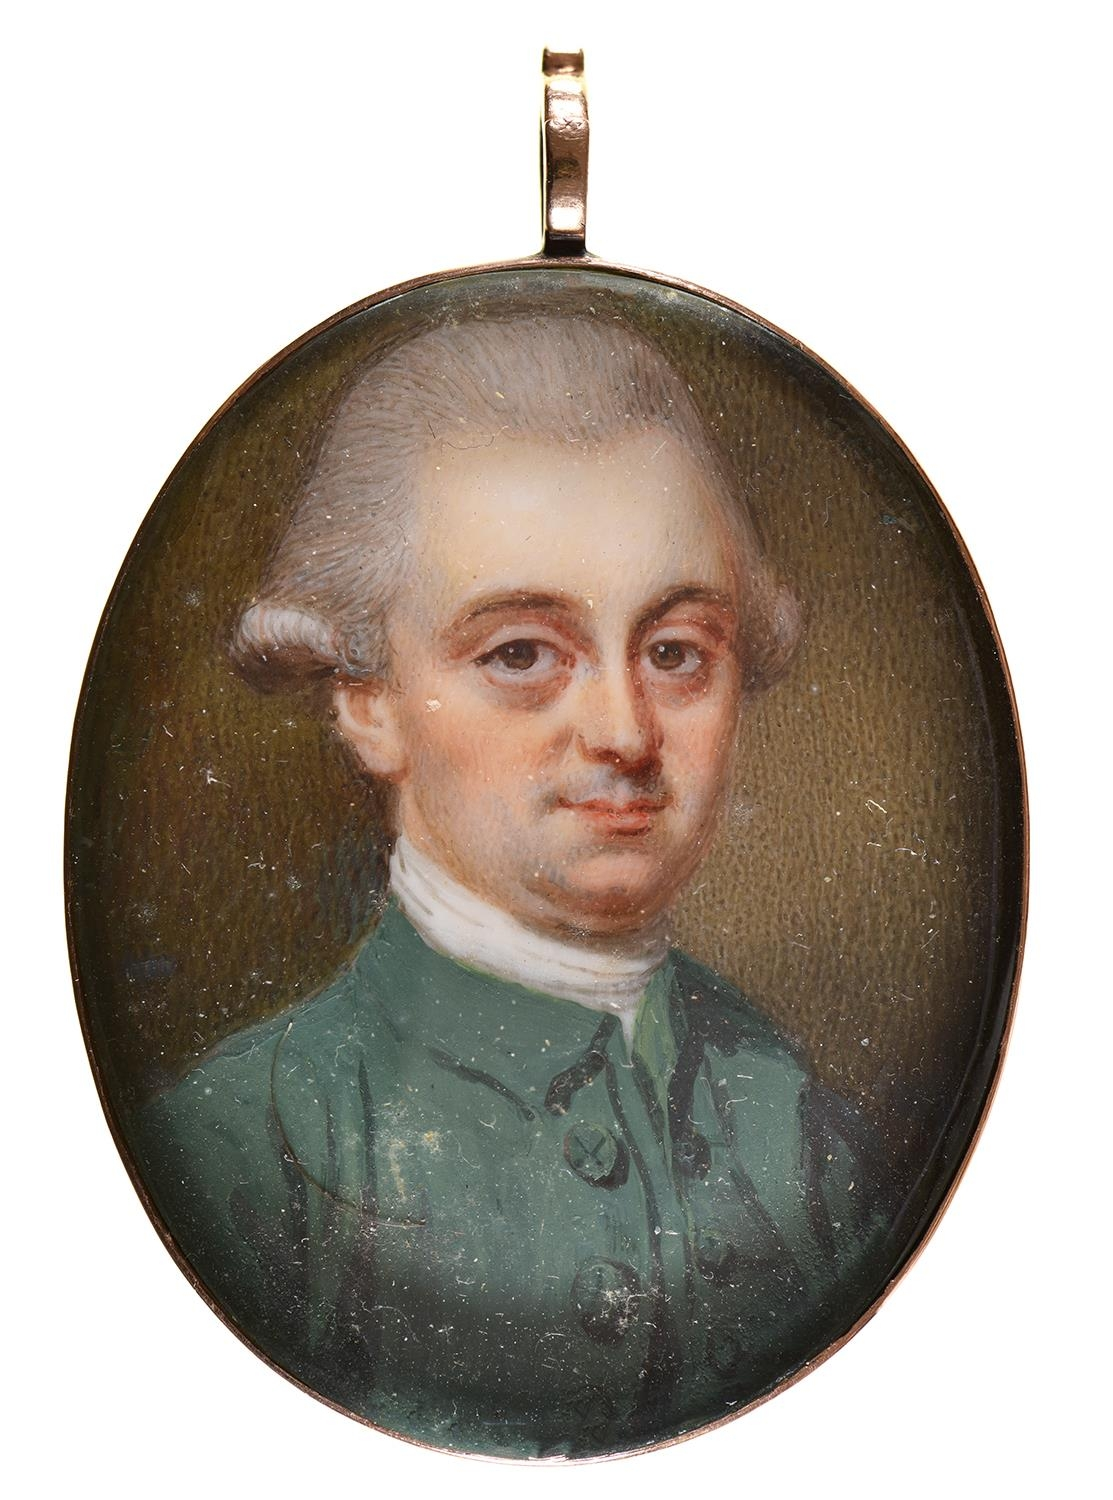 EnglishSchool, 18th c - Portrait Miniature of a Man called Oliver Goldsmith, with powdered hair, in